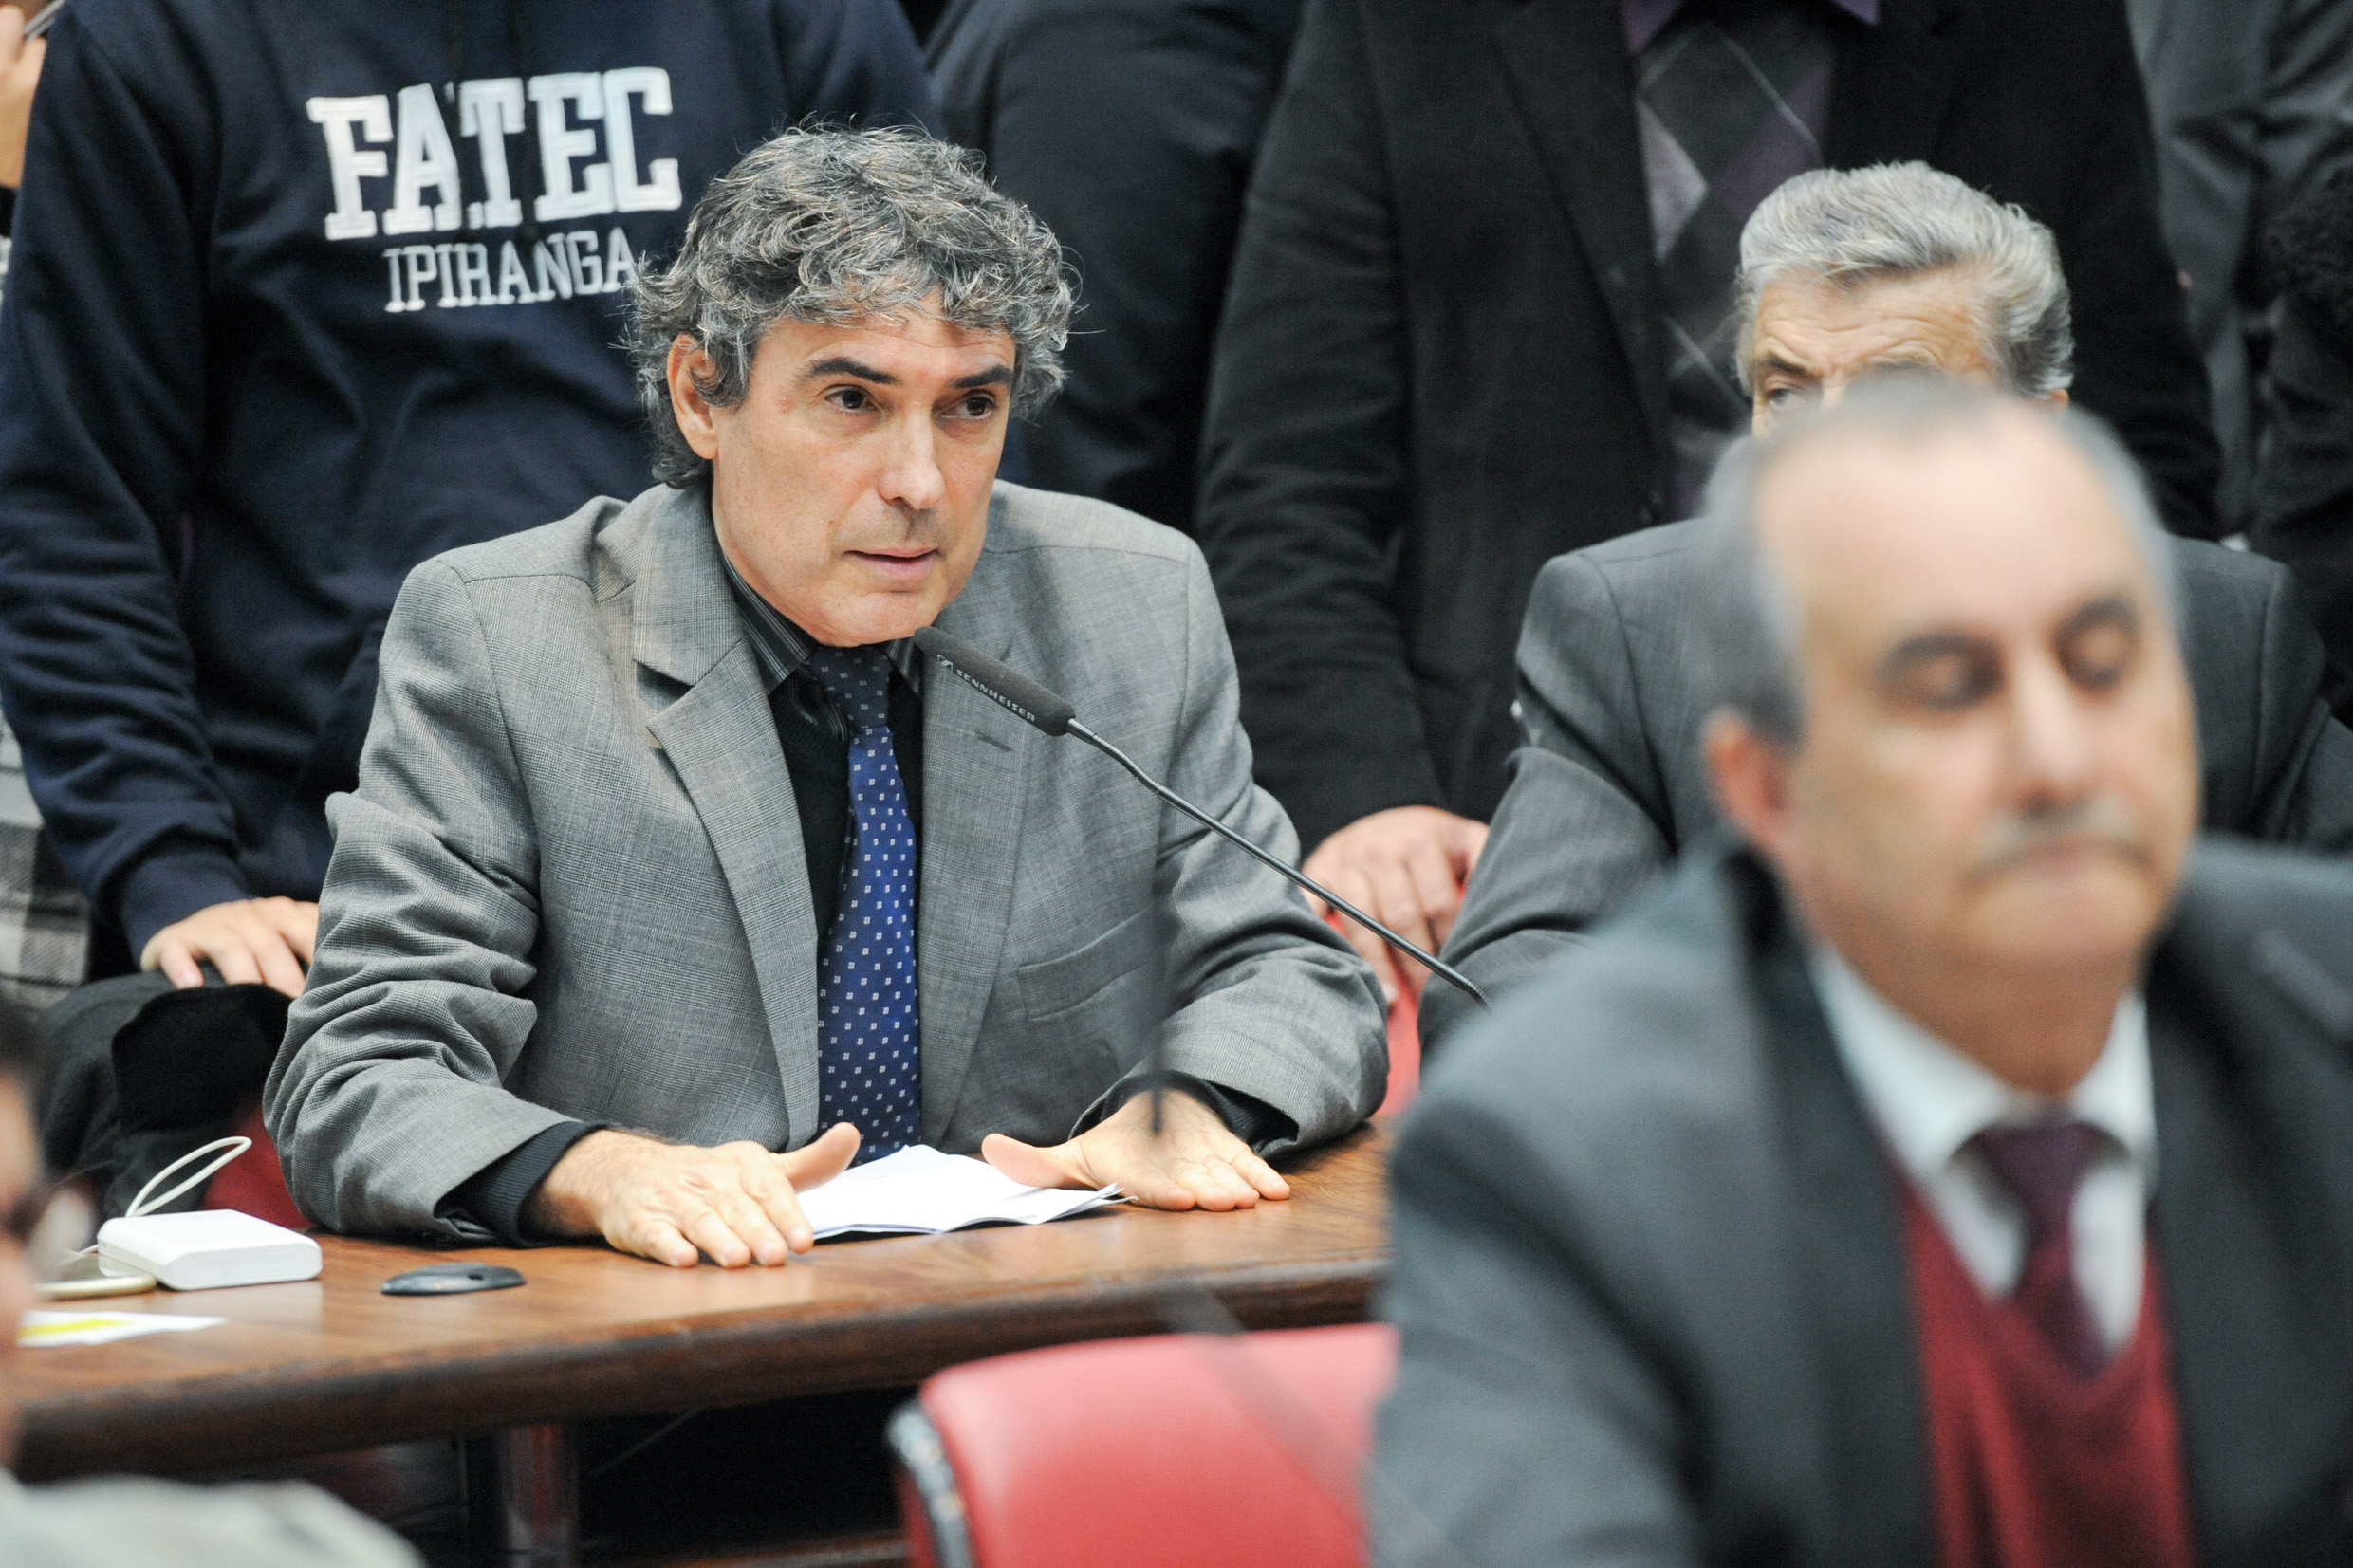 Carlos Giannazi<a style='float:right' href='https://www3.al.sp.gov.br/repositorio/noticia/N-06-2016/fg191888.jpg' target=_blank><img src='/_img/material-file-download-white.png' width='14px' alt='Clique para baixar a imagem'></a>